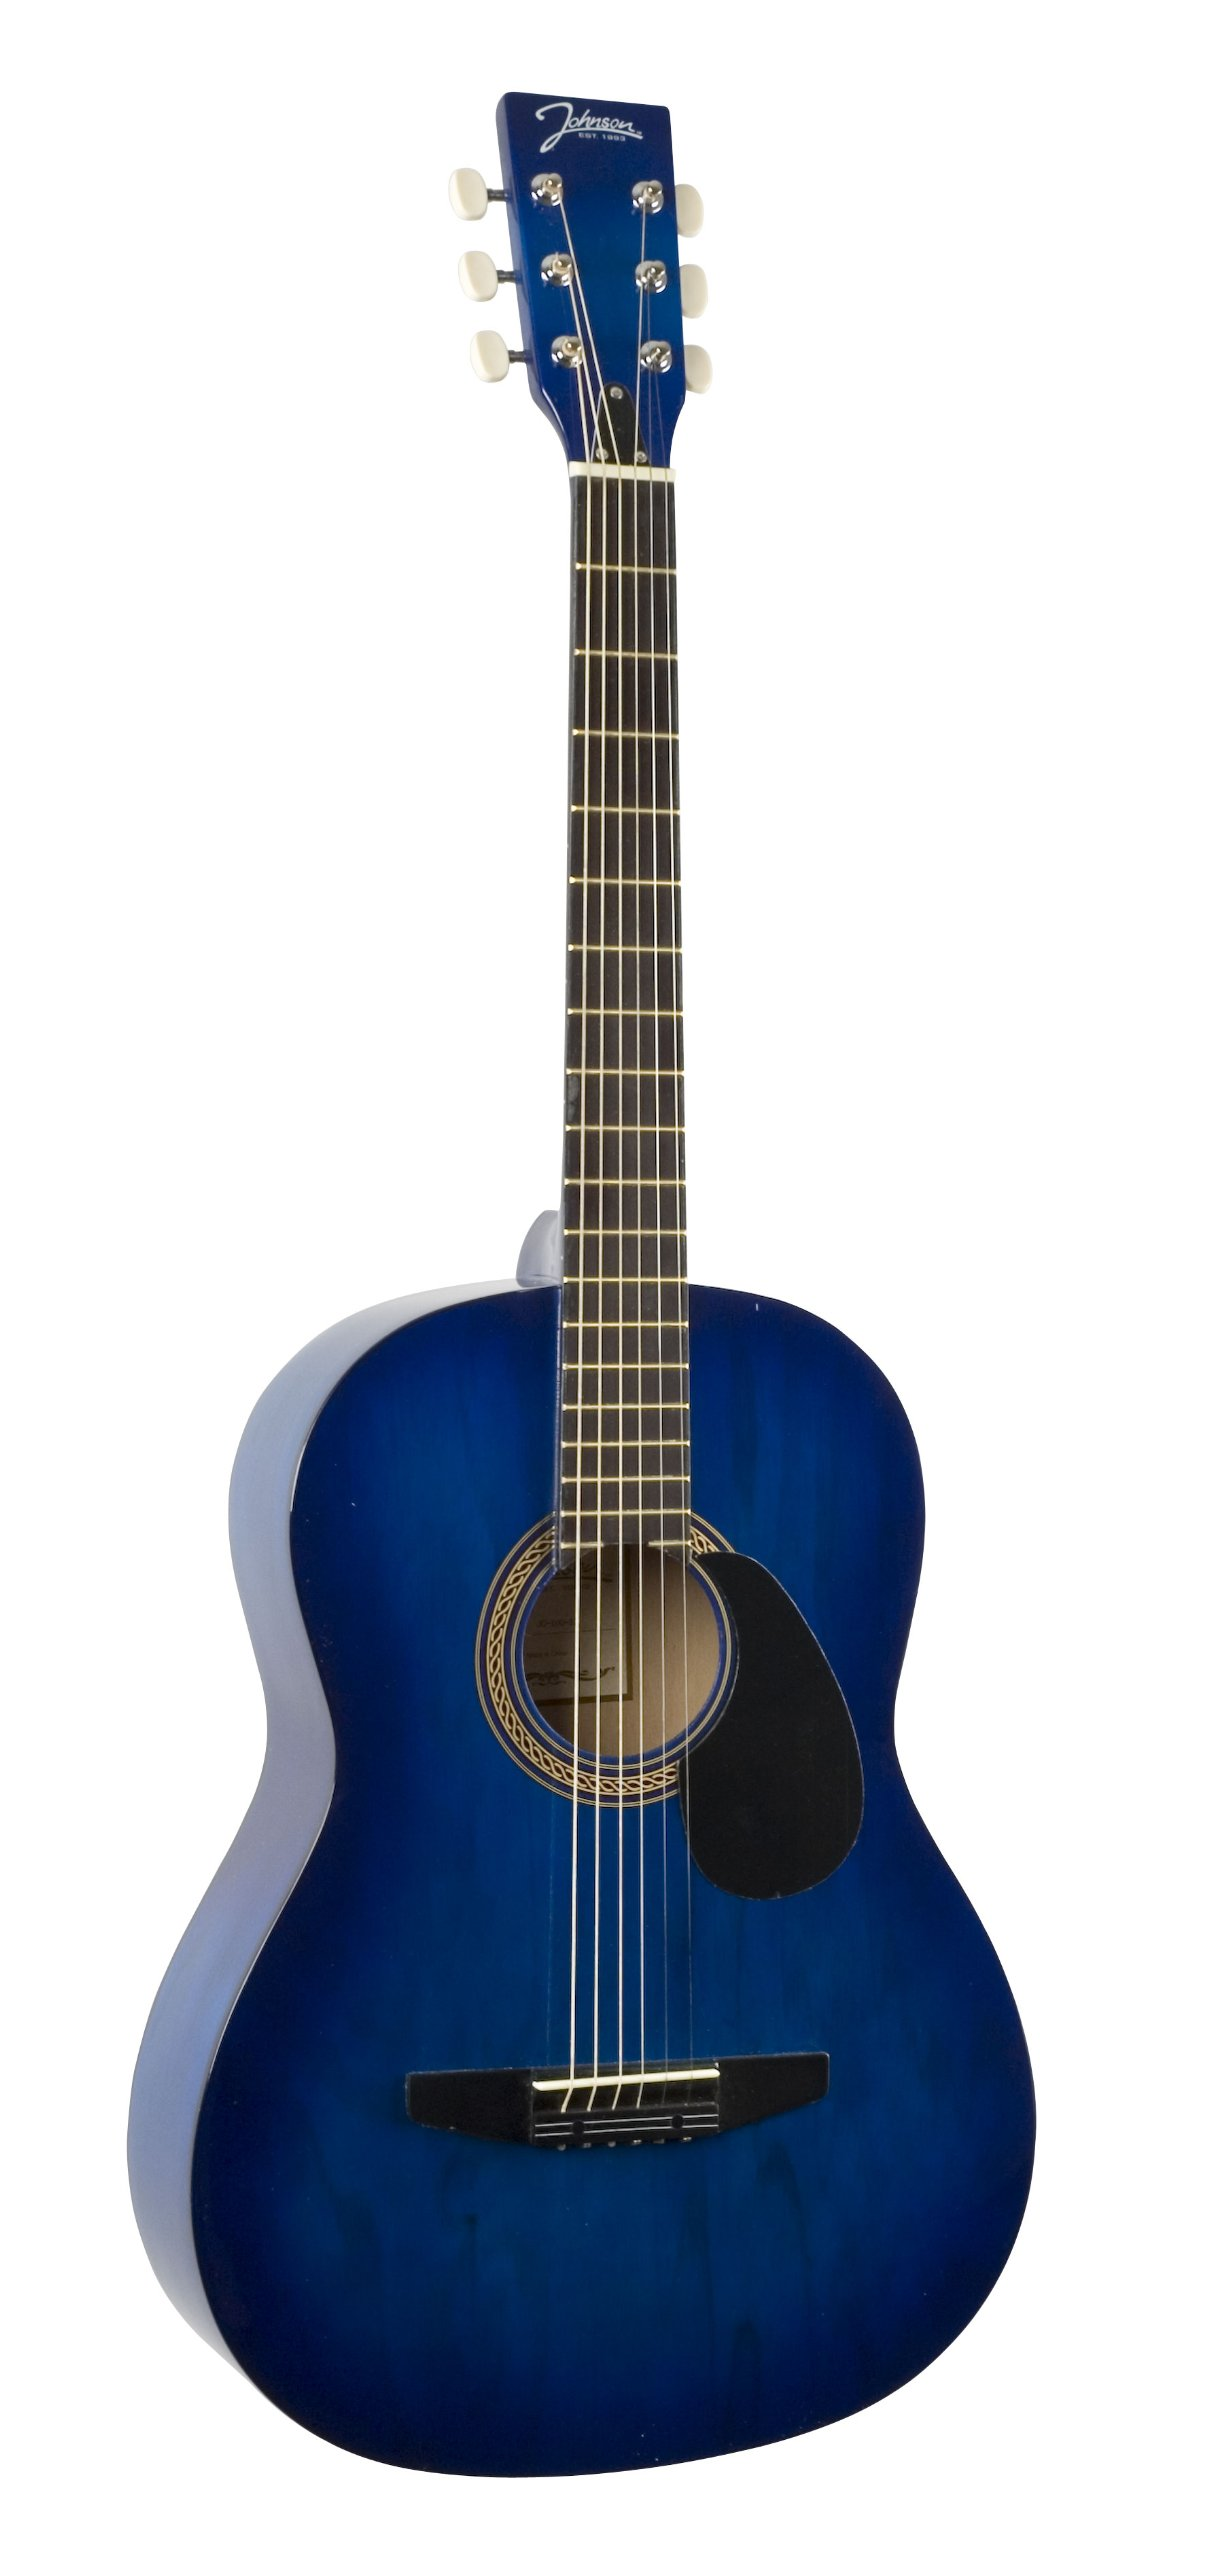 Johnson JG-100-BL Student Acoustic Guitar, Blueburst